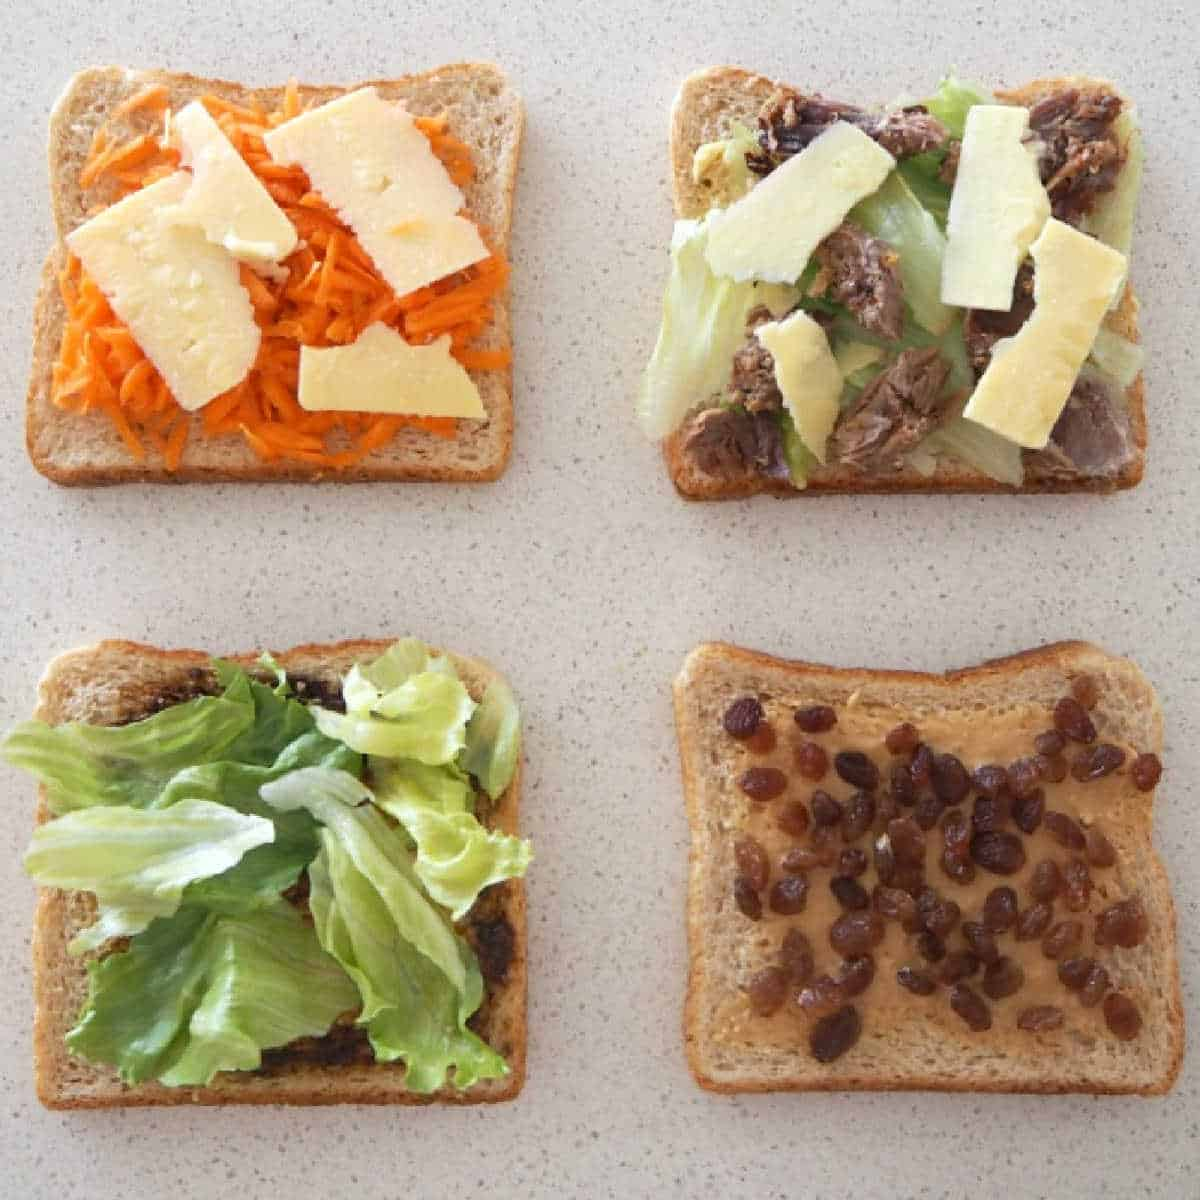 Image of four open sandwiches with different fillings